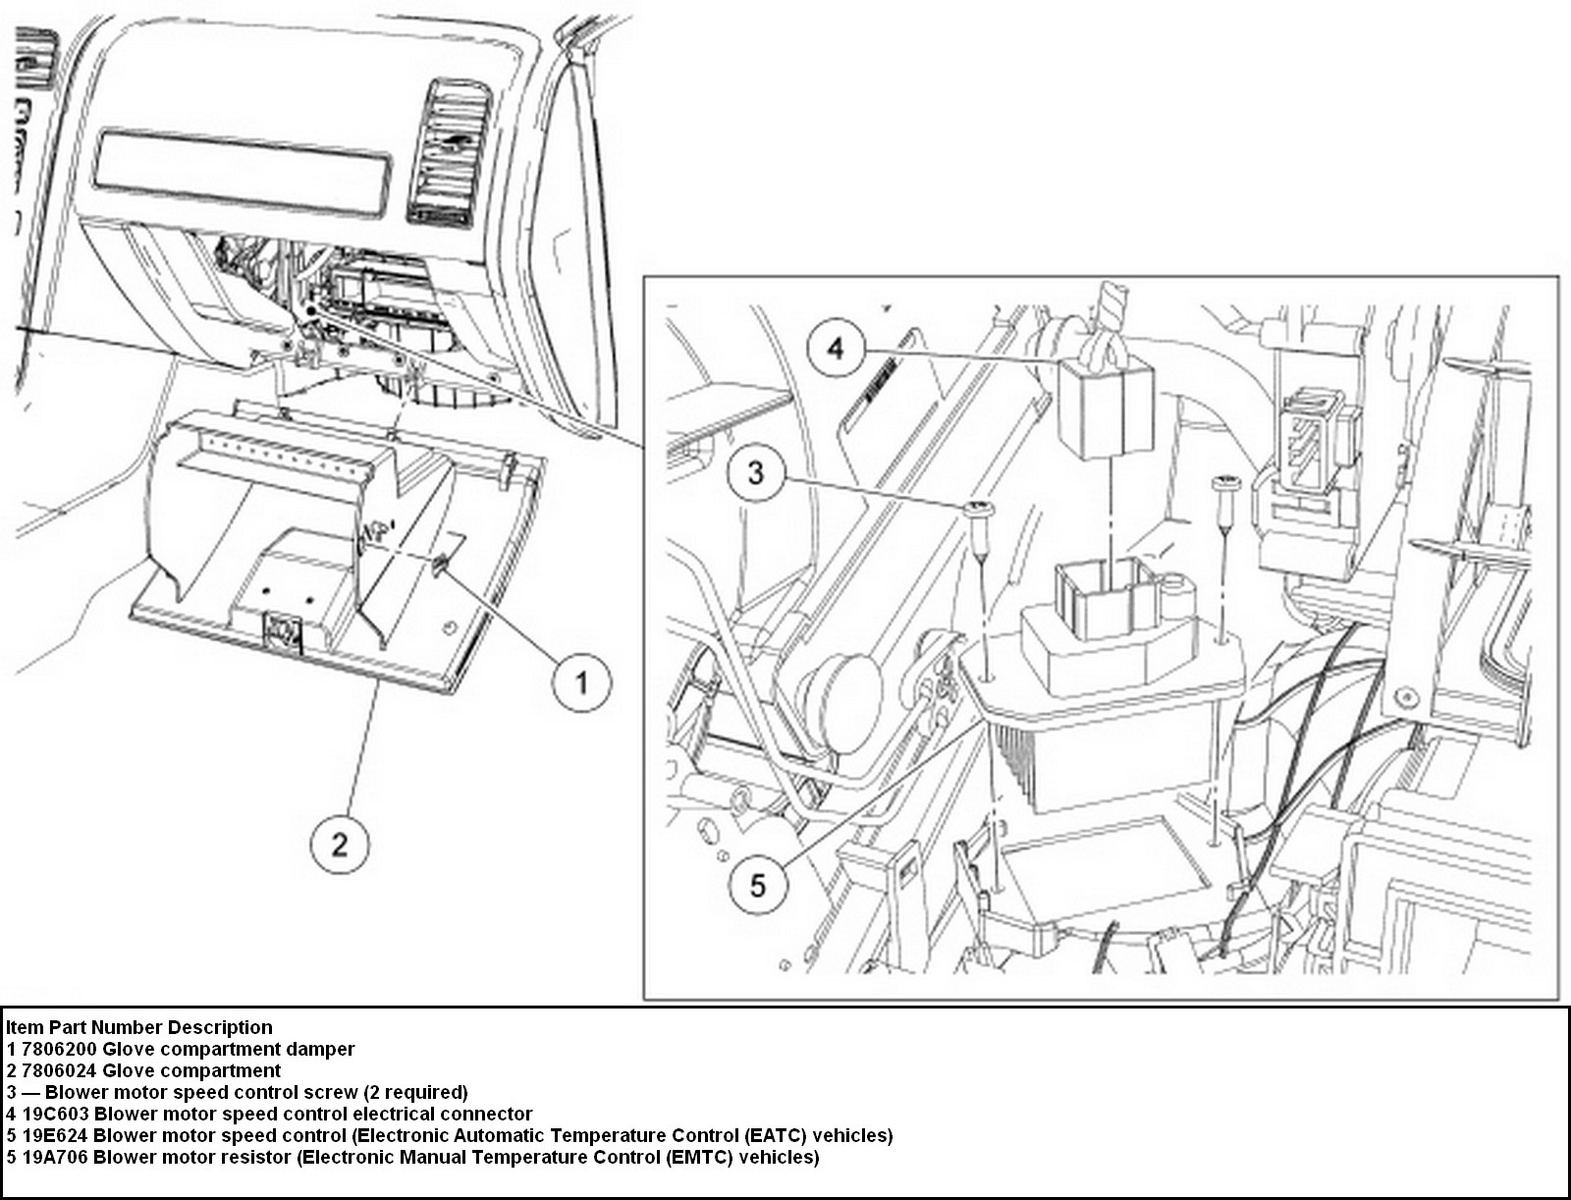 2008 Toyota Highlander Parts Diagram Blower Motor Reinvent Your 2014 Fuse Box Ford Edge Questions How Do You Remove And Replace Install A Rh Cargurus Com Engine